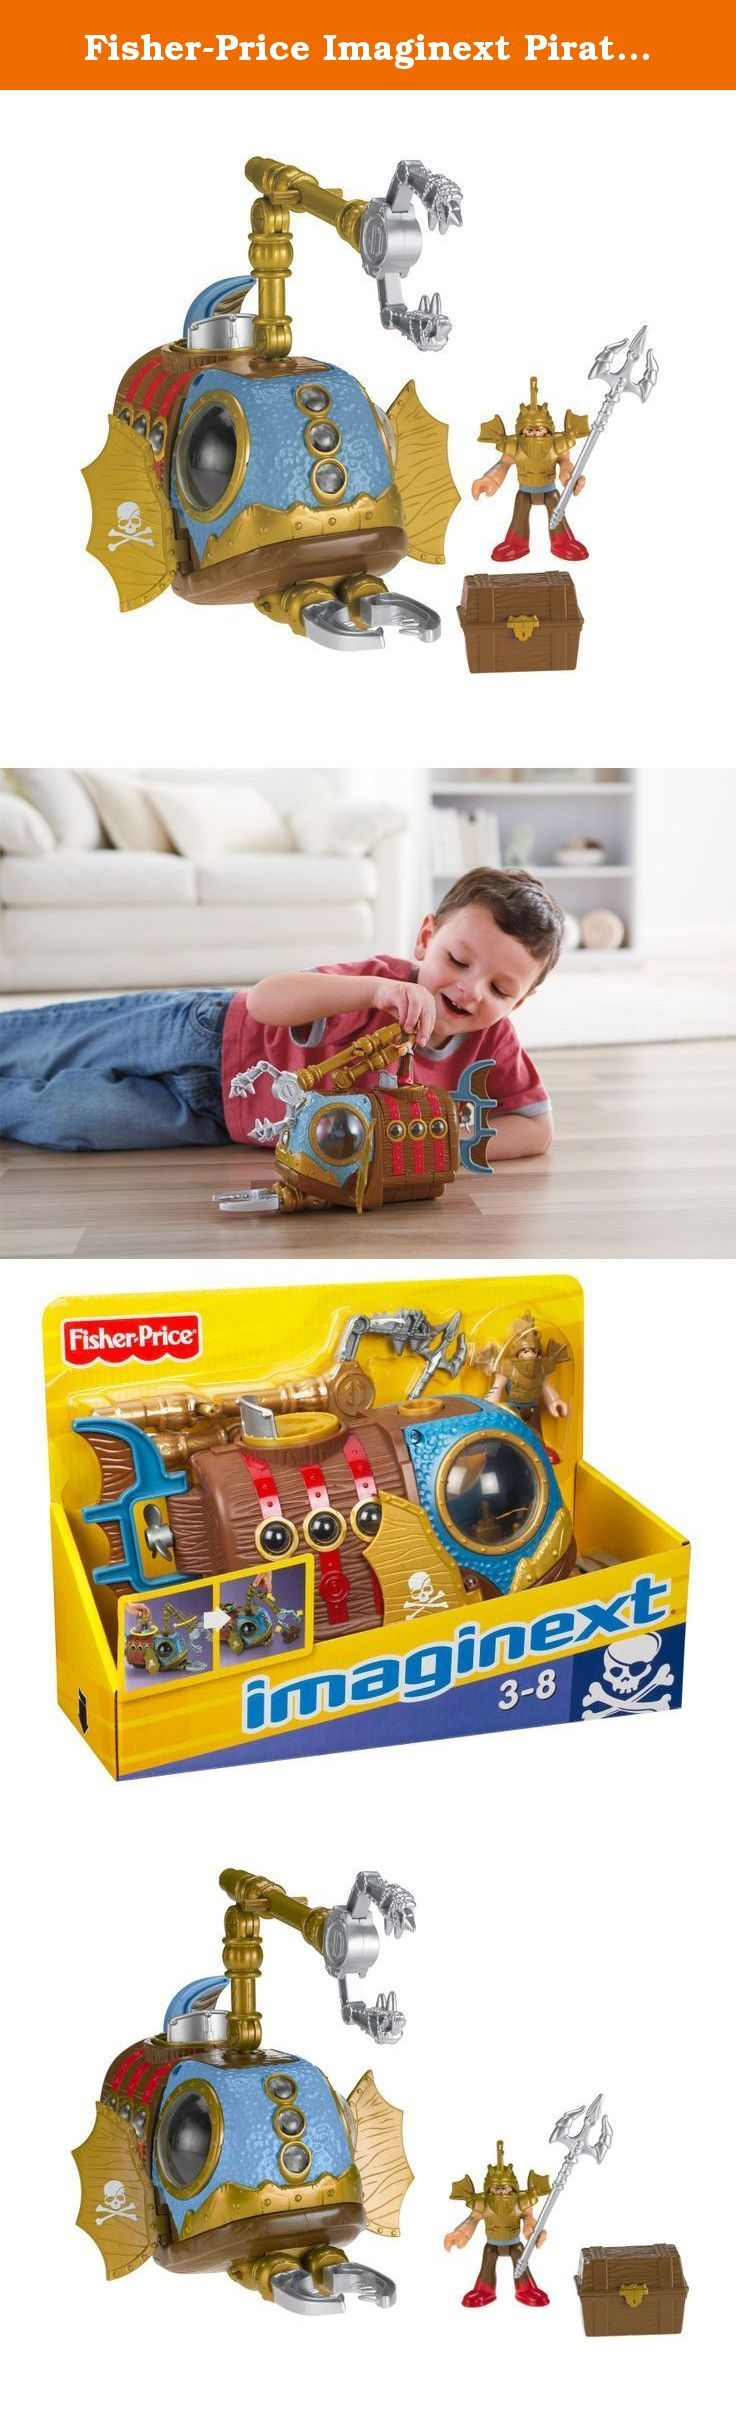 Fisher-Price Imaginext Pirate Sub. Your little ones are in command of all that happens in this underwater treasure hunt Imagination is limitless with the Pirate Sub and its awesome mechanical claw View larger Pirate Sub will immerse kids in a fun, exciting world of pirates and buried treasure Take Young Buccaneers on a Voyage to the Bottom of the Sea Shaped just like an angler fish, this sub takes the battle between skeleton pirates and human pirates to the deepest, darkest depths of the...